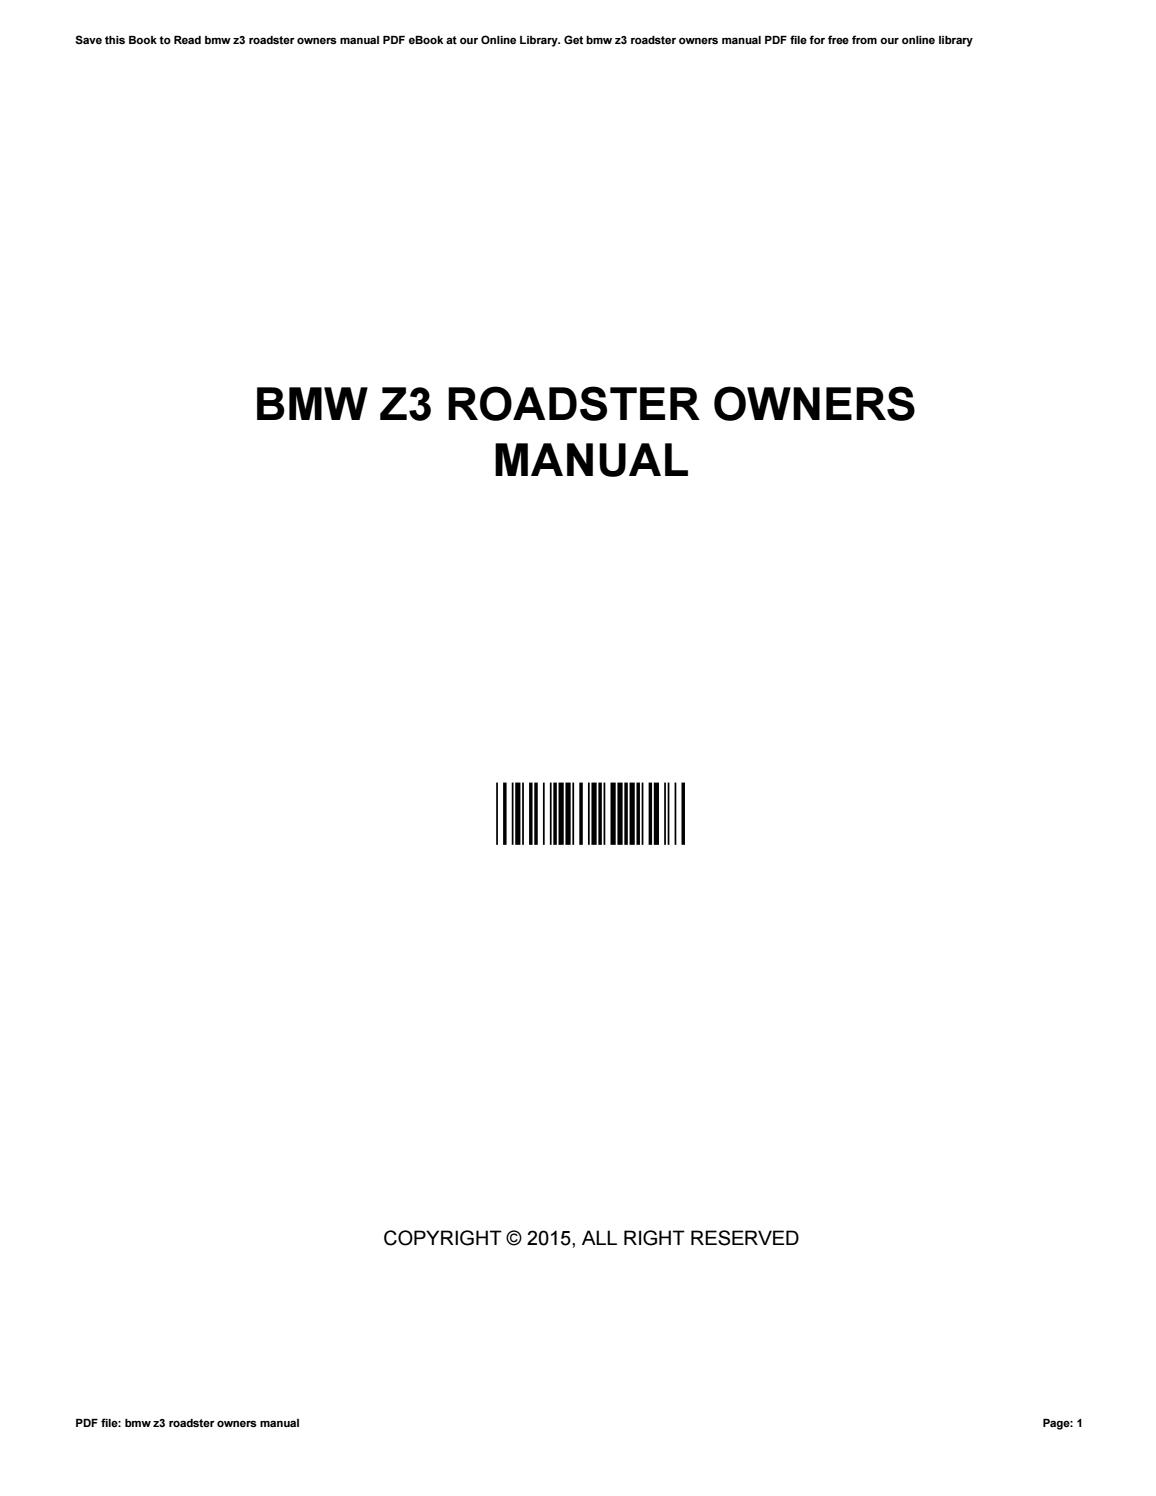 Bmw z3 roadster owners manual by NancyBrink1958 - issuu